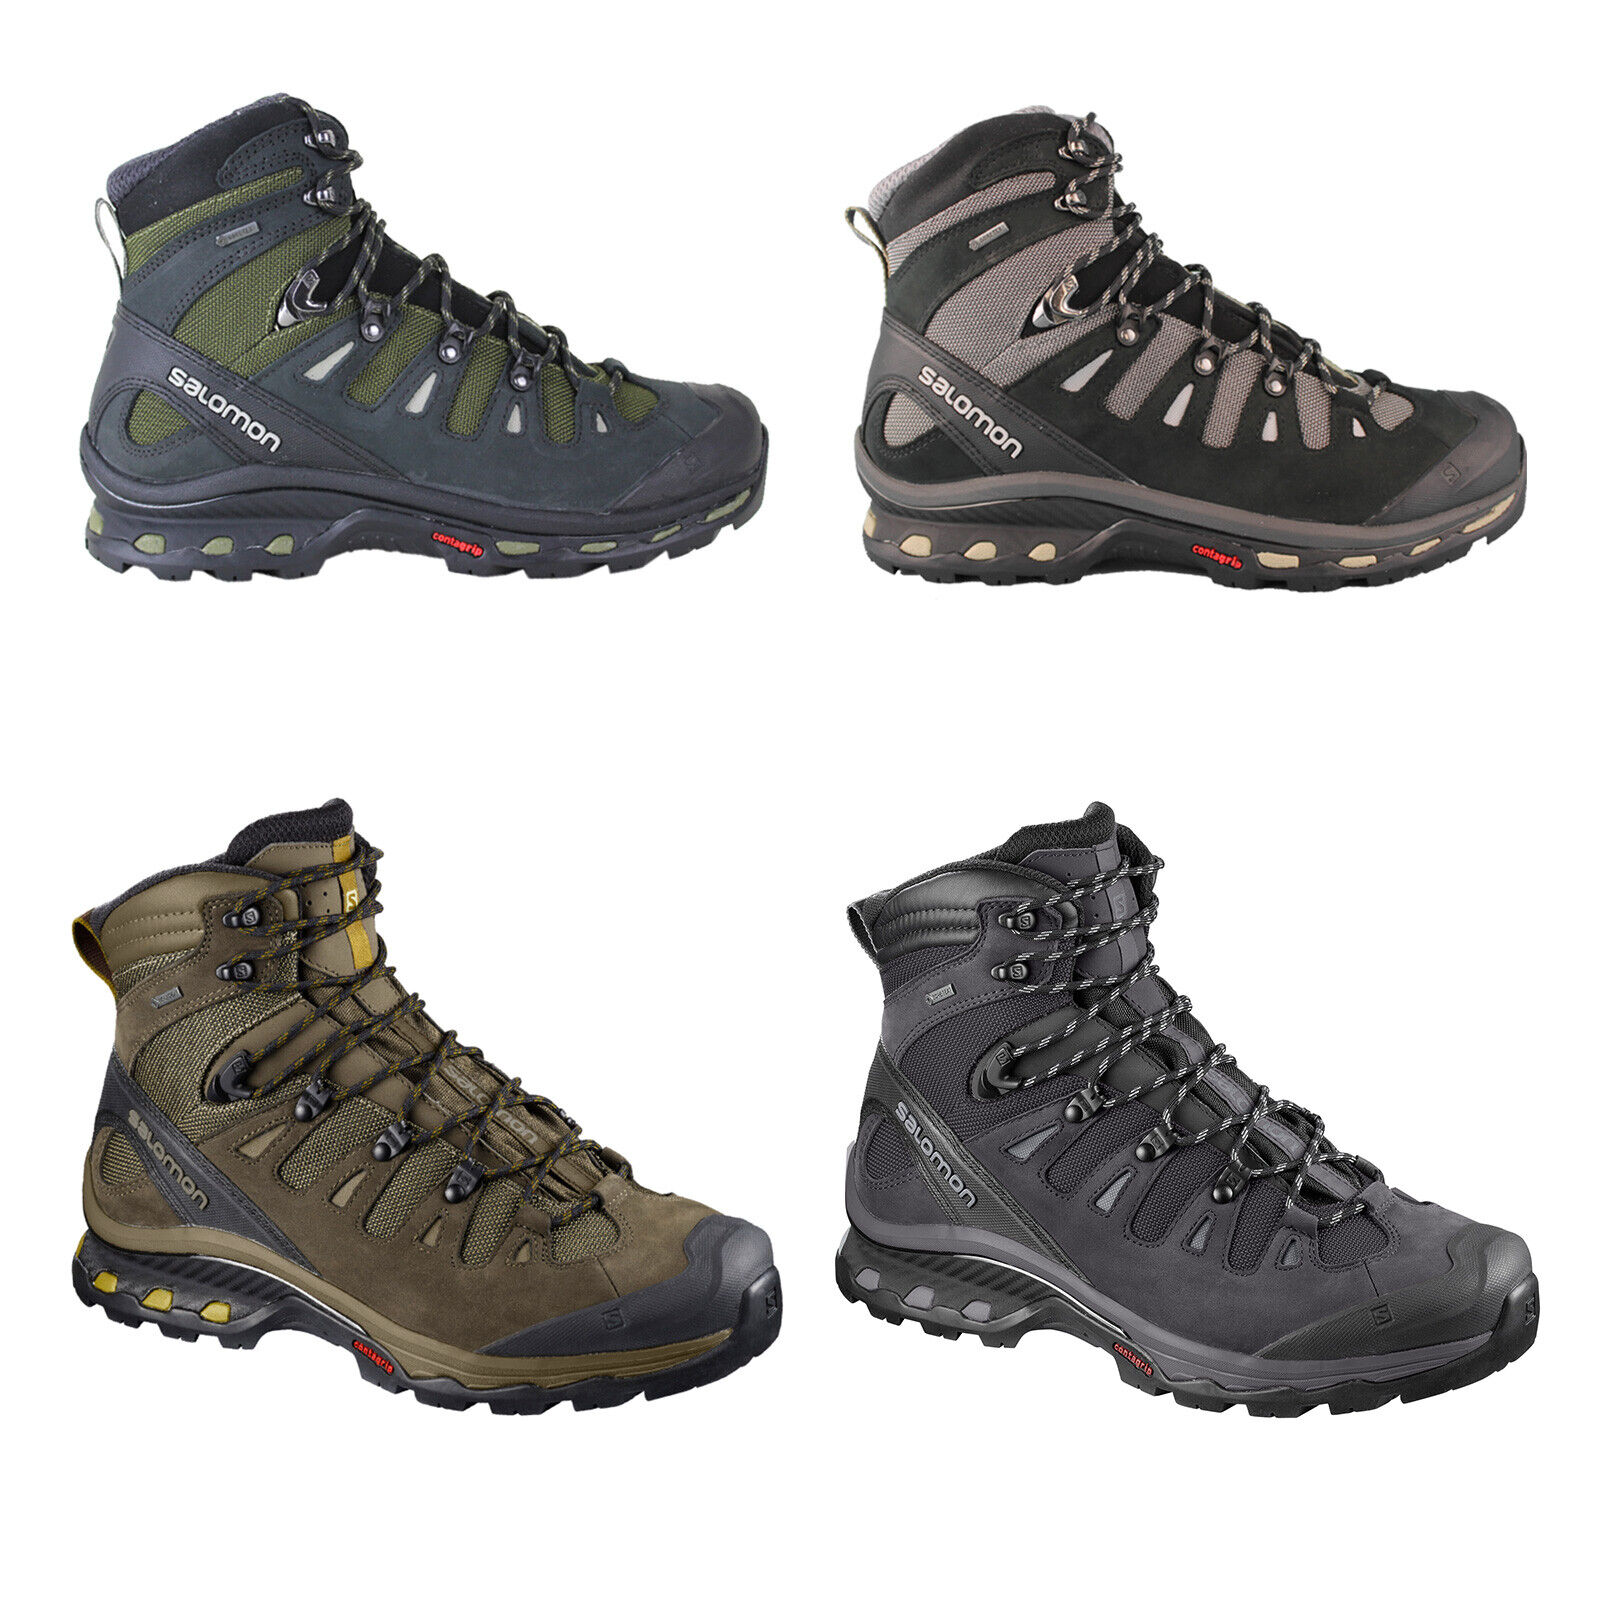 Gtx Boots Hiking Trekking Men's New Salomon 4d Quest Shoes SzVqUMp